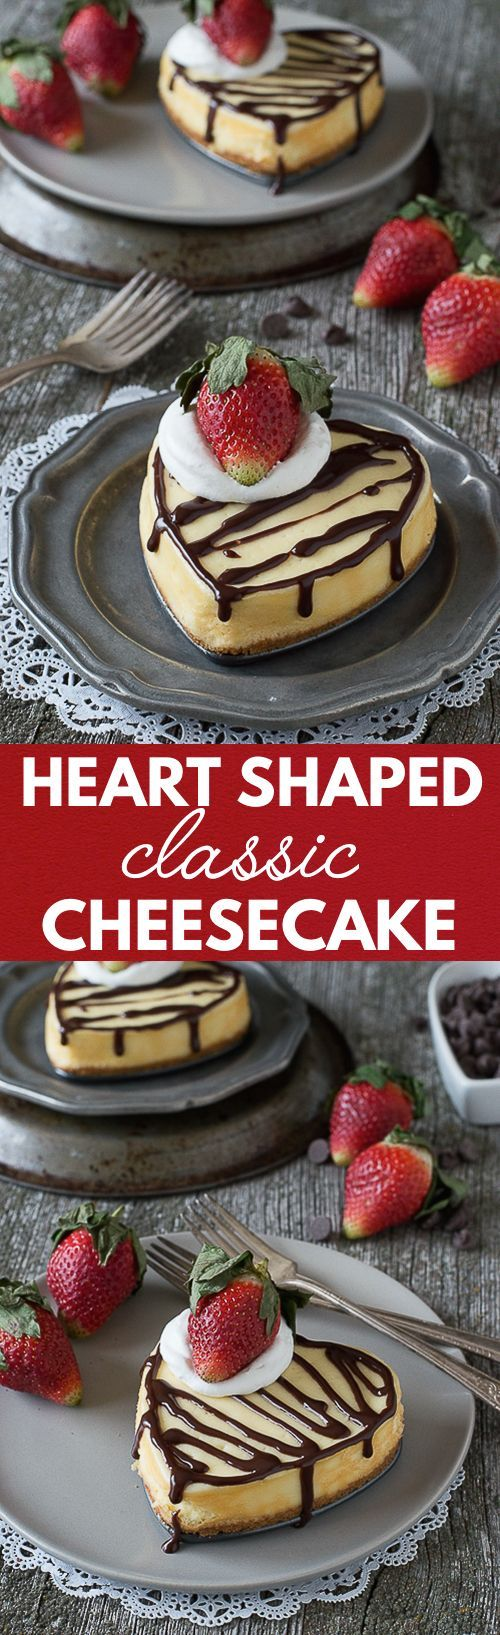 Heart Shaped Classic Cheesecake - a classic cheesecake recipe perfect for Valentine's Day!